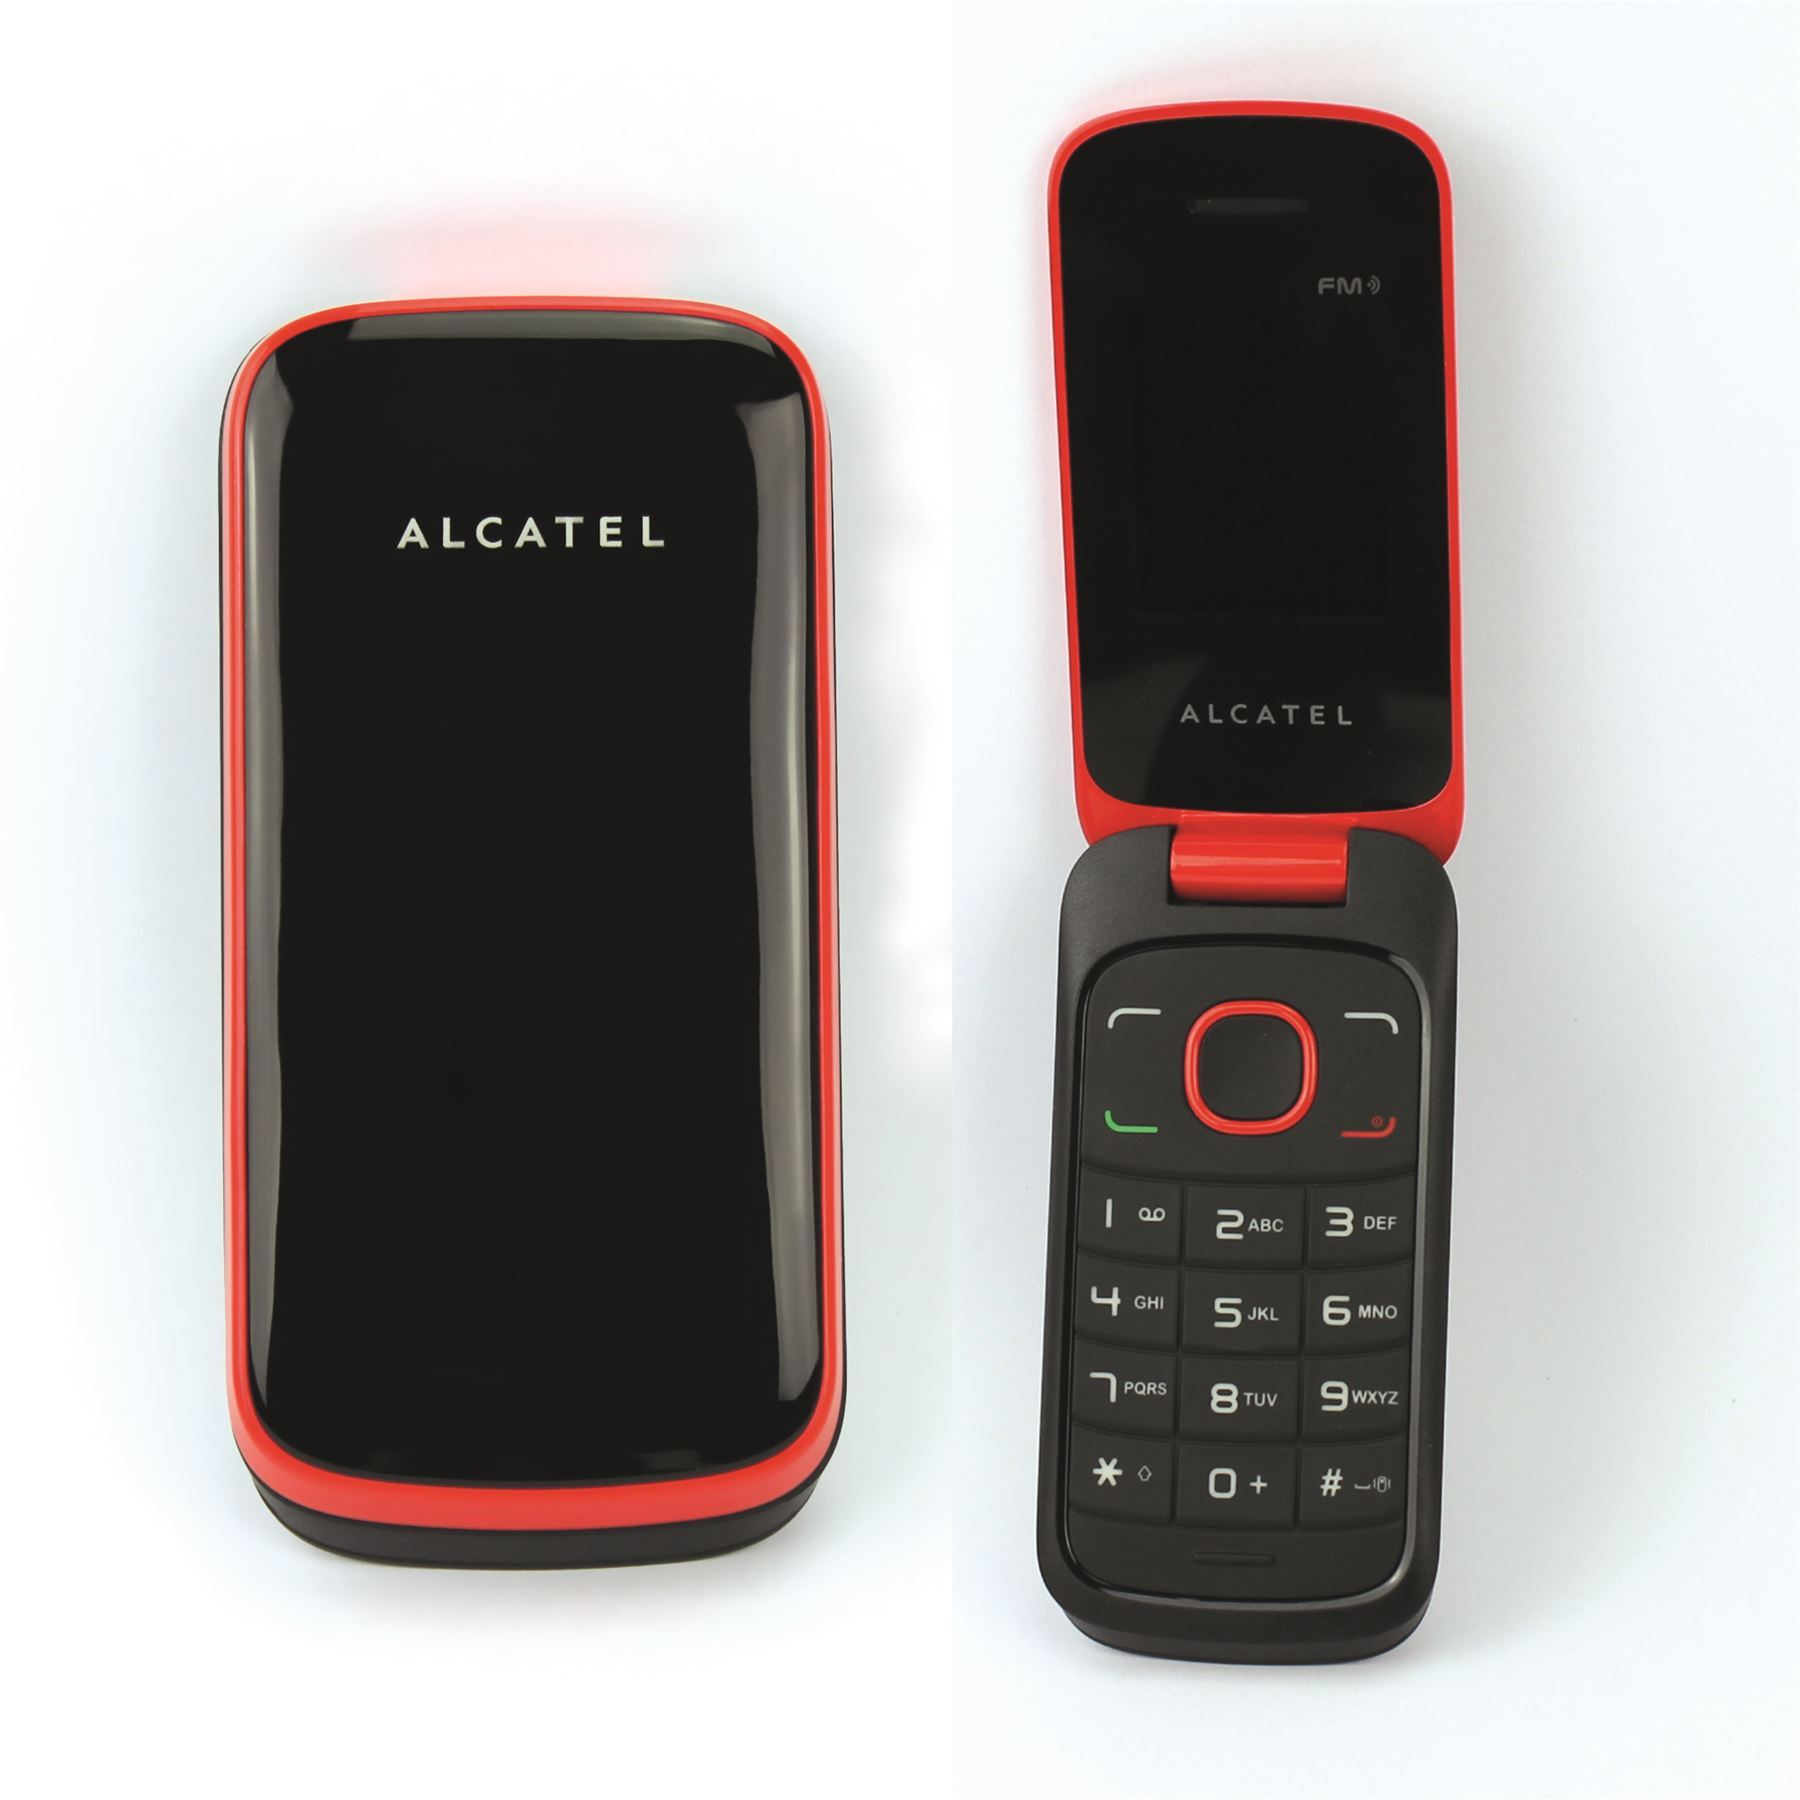 brand new alcatel one touch 1030x cheap unlocked 2g flip mobile phone red ebay. Black Bedroom Furniture Sets. Home Design Ideas